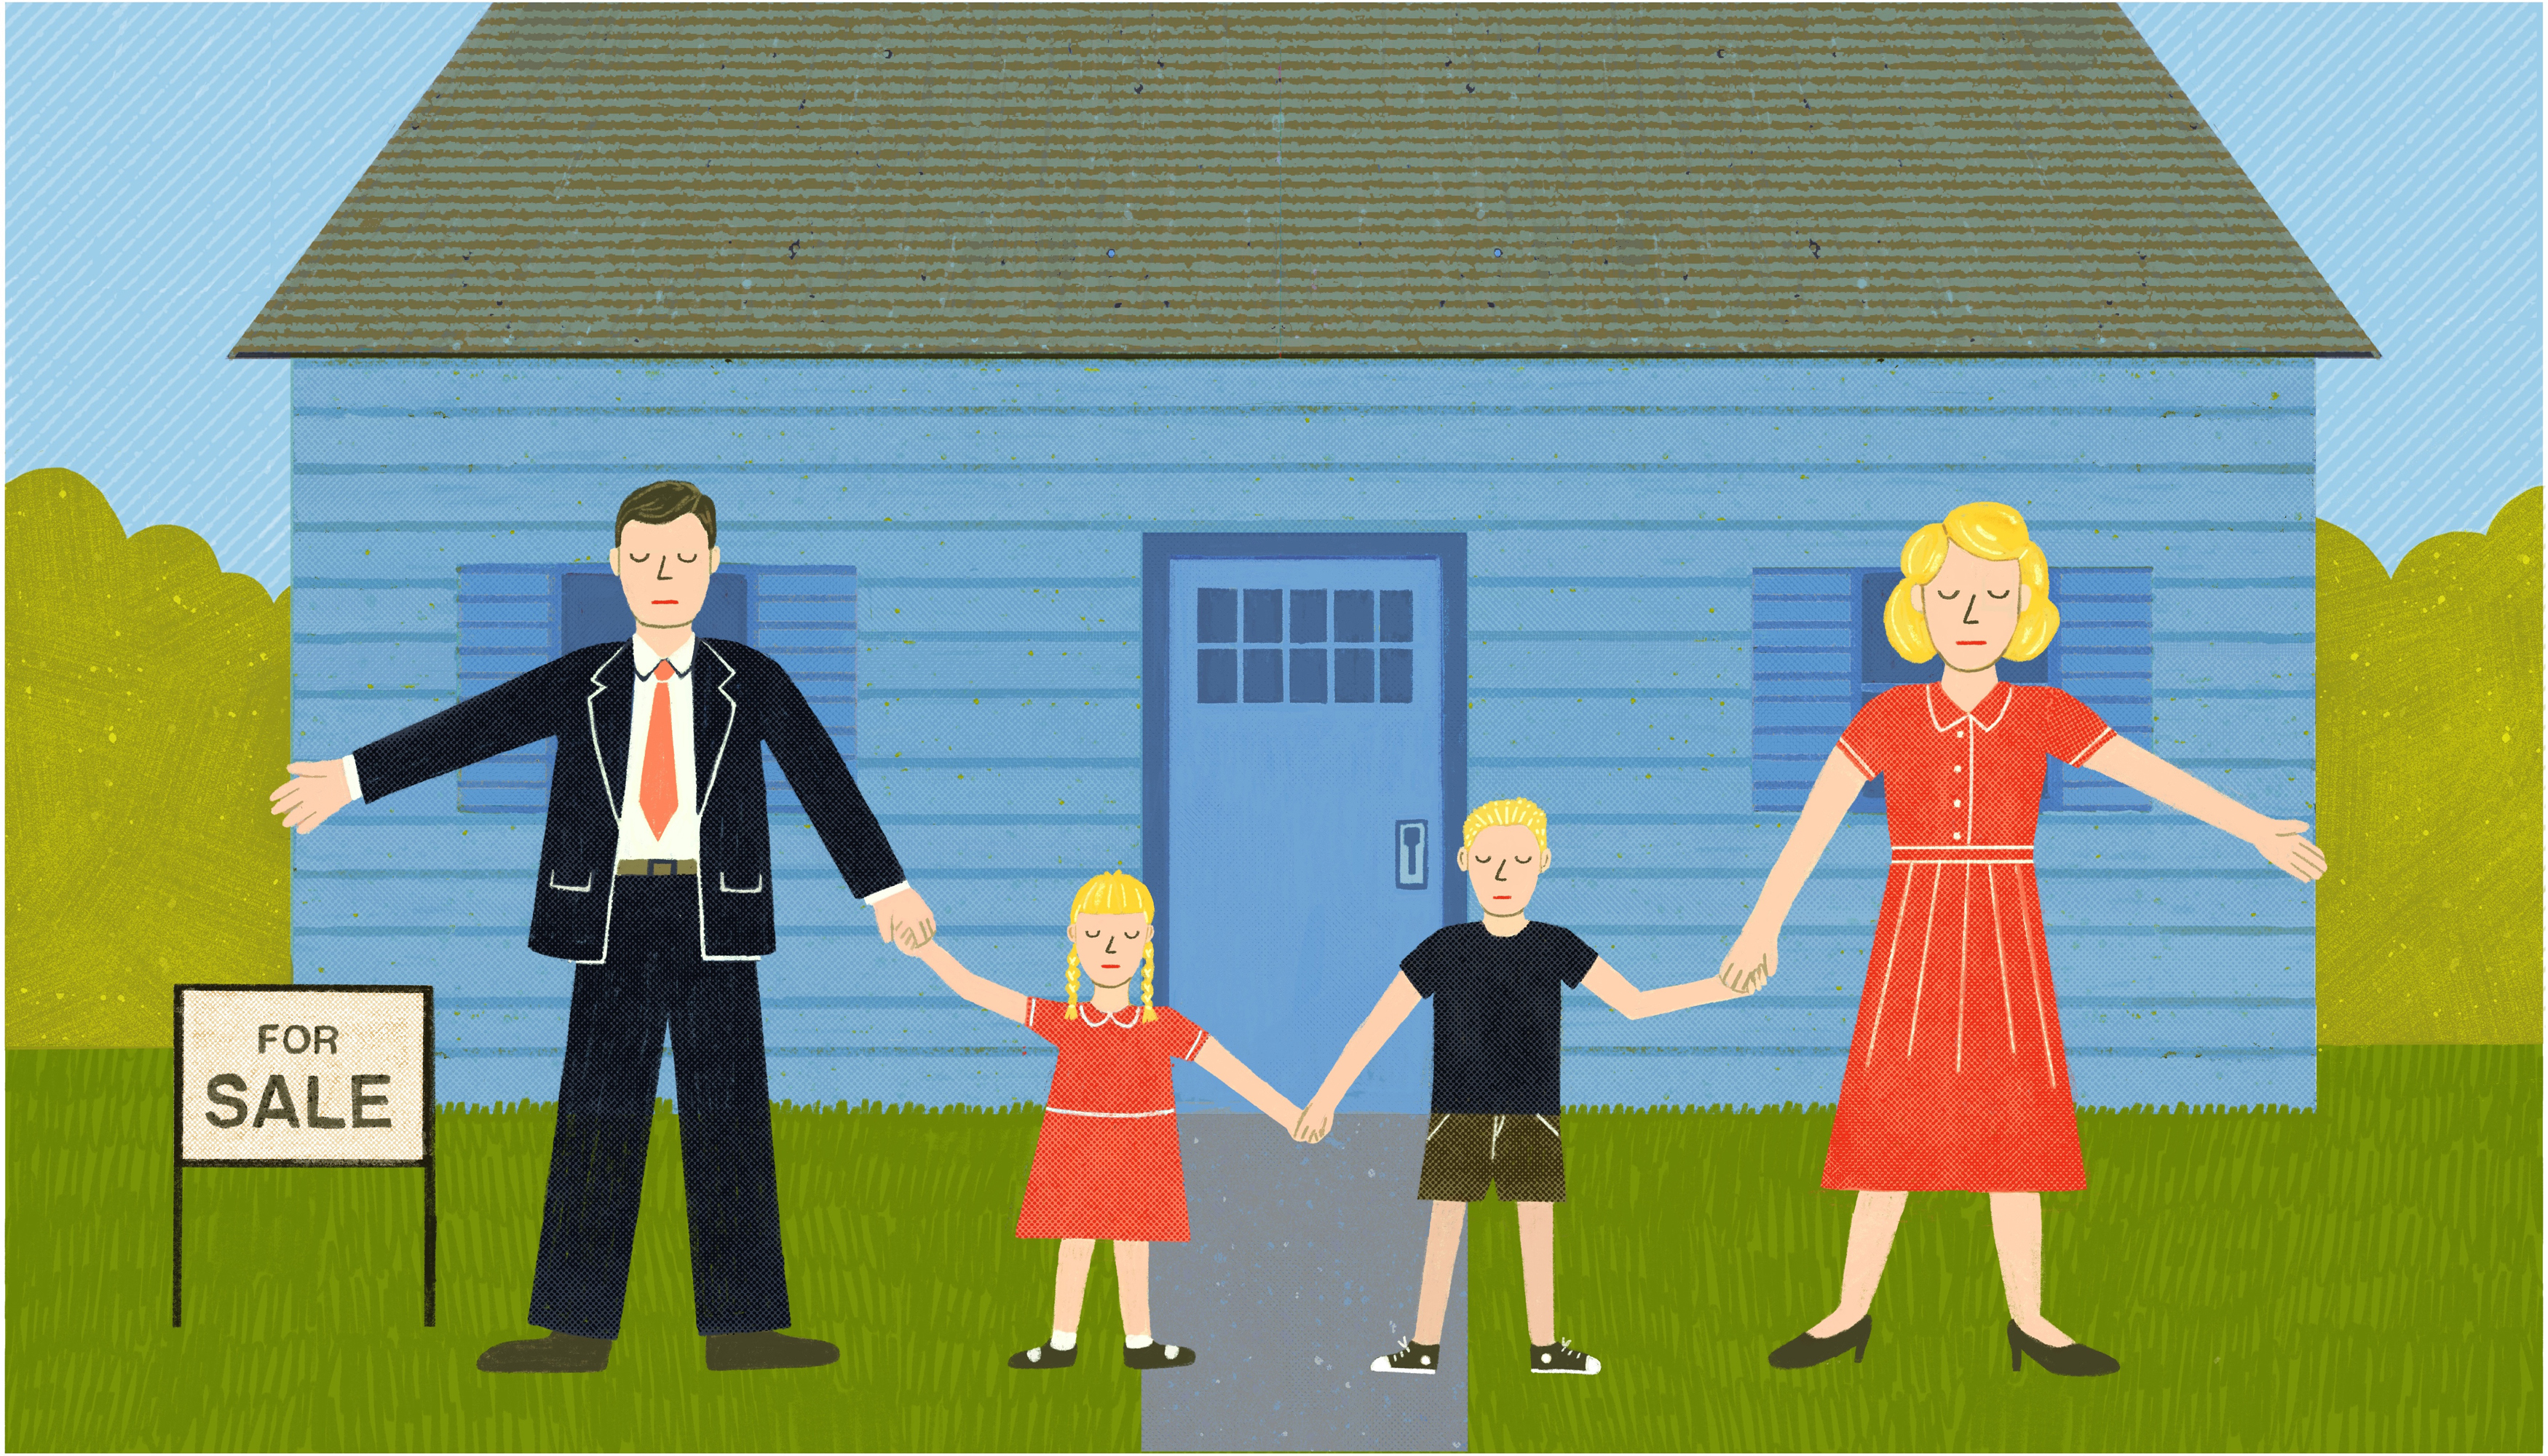 A 1950s-styled white family stands hand-in-hand in front of a blue single family home. The home has a 'For Sale' sign out front but they stand as if they are protecting it. Illustration